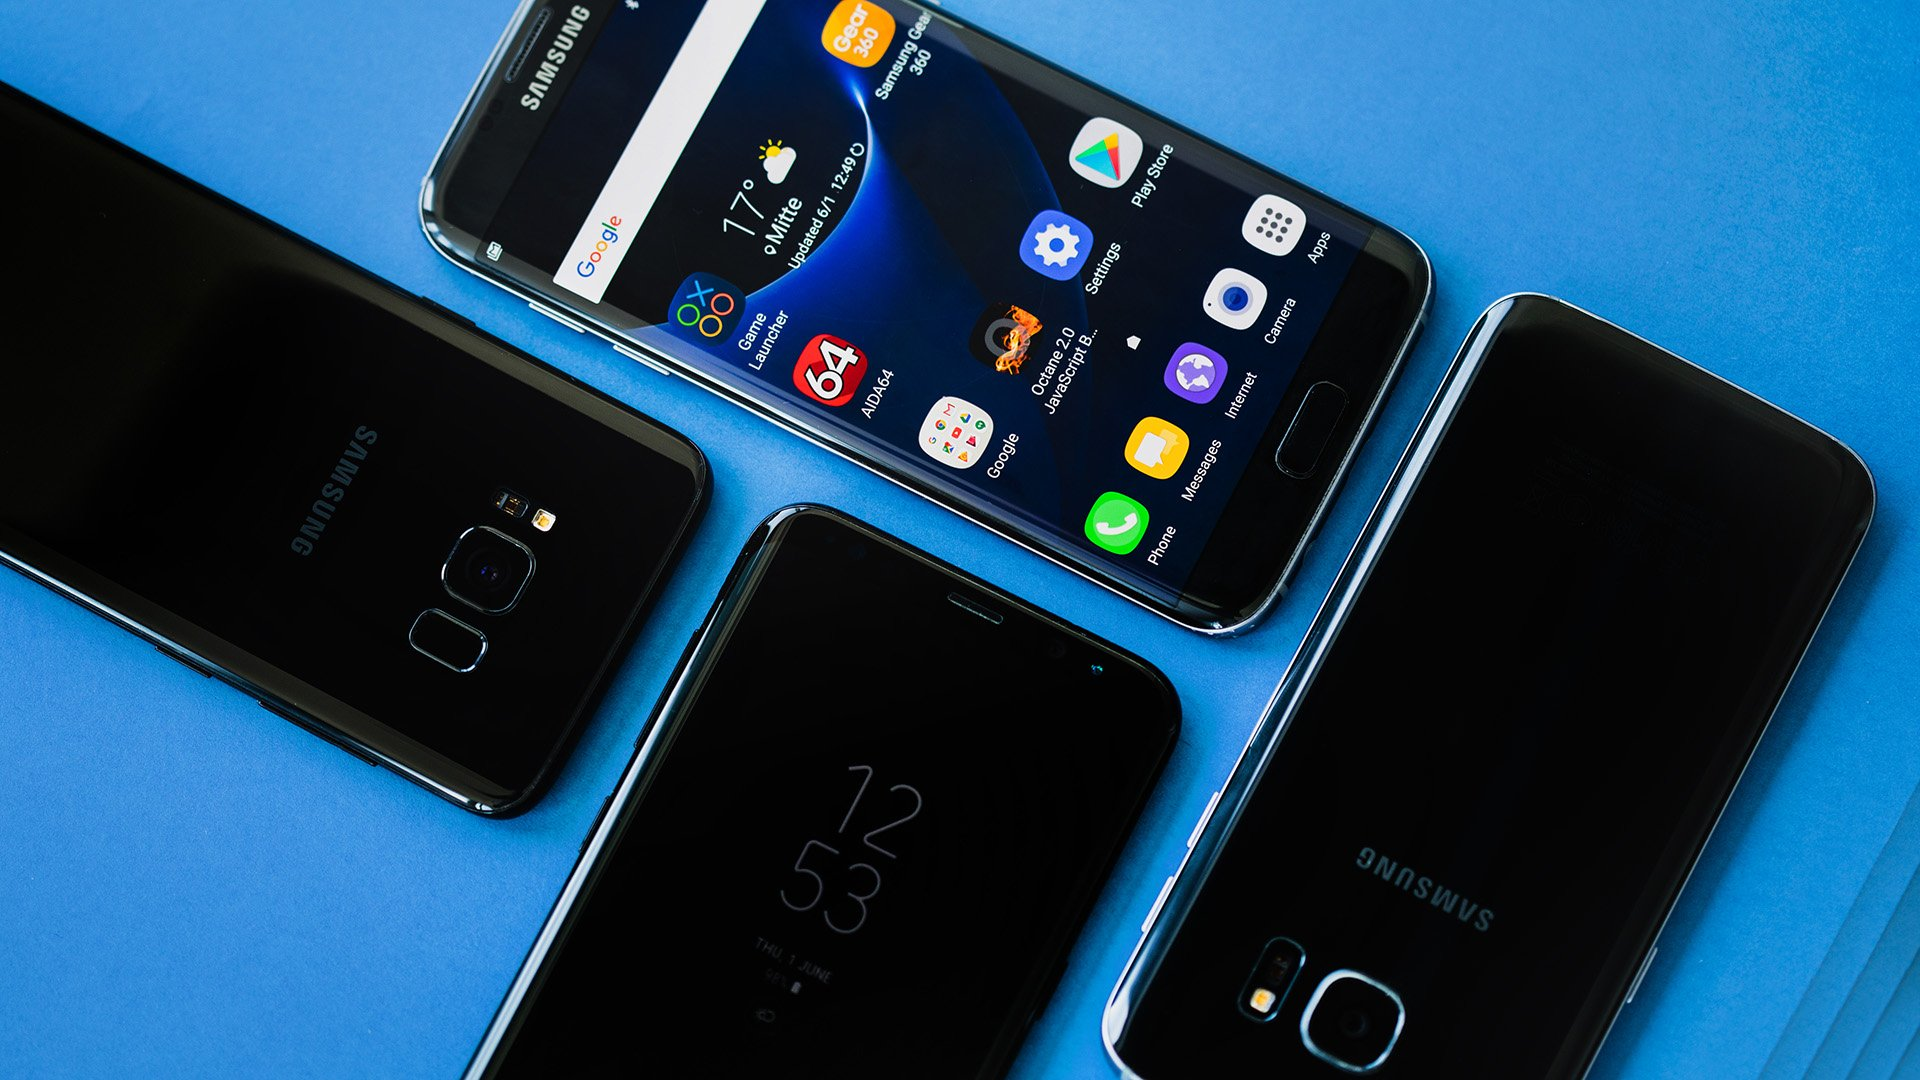 Easy Guide How to Convert Video to Samsung Galaxy S8/S8